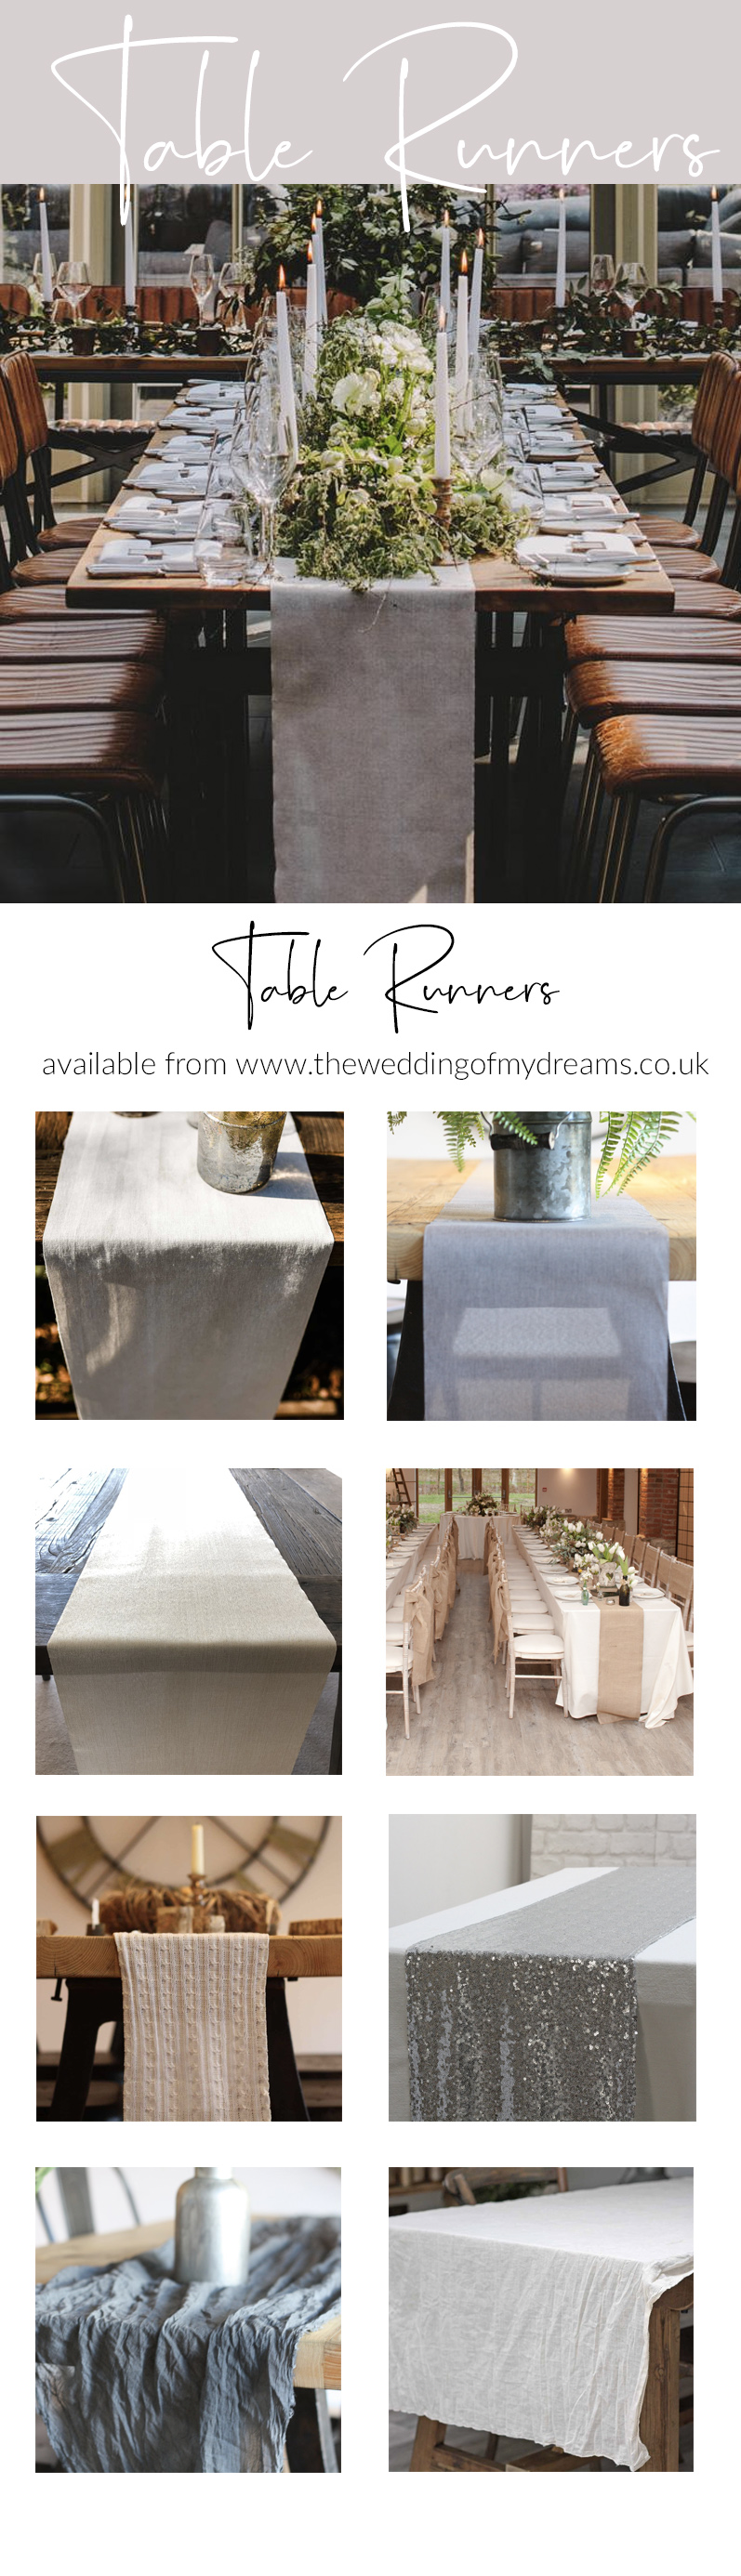 Table runners for weddings from THE WEDDING OF MY DREAMS wedding styling